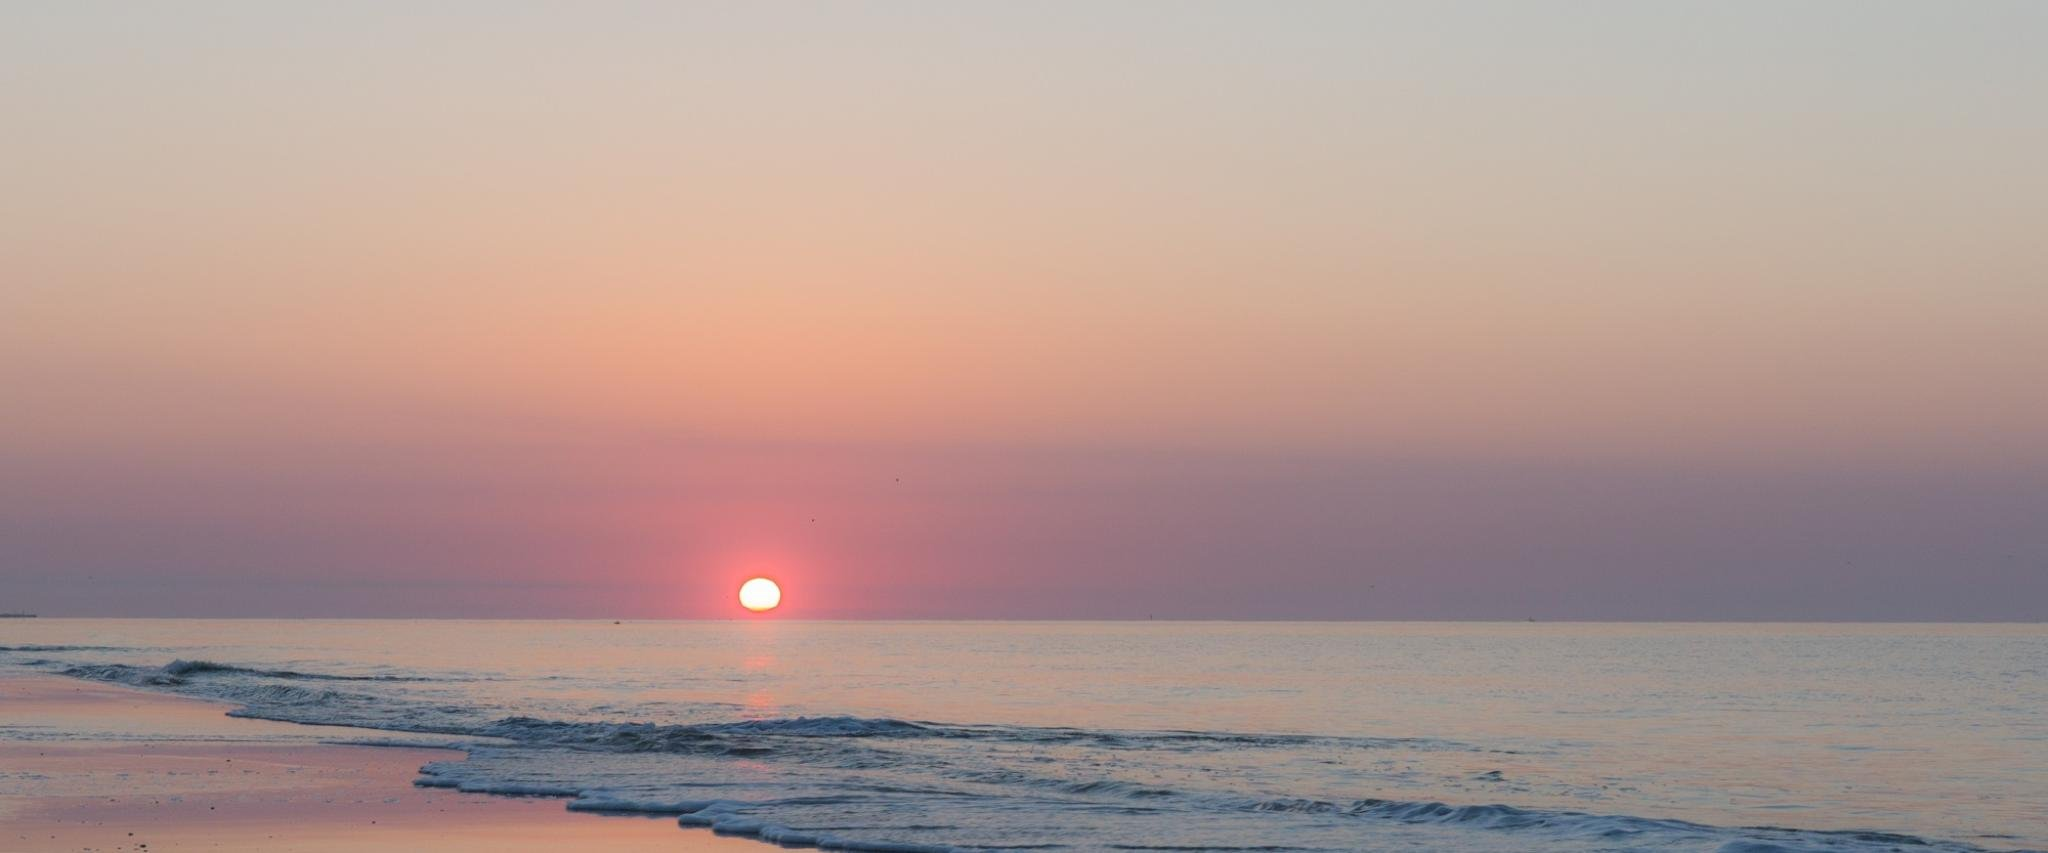 sunrise orange beach al